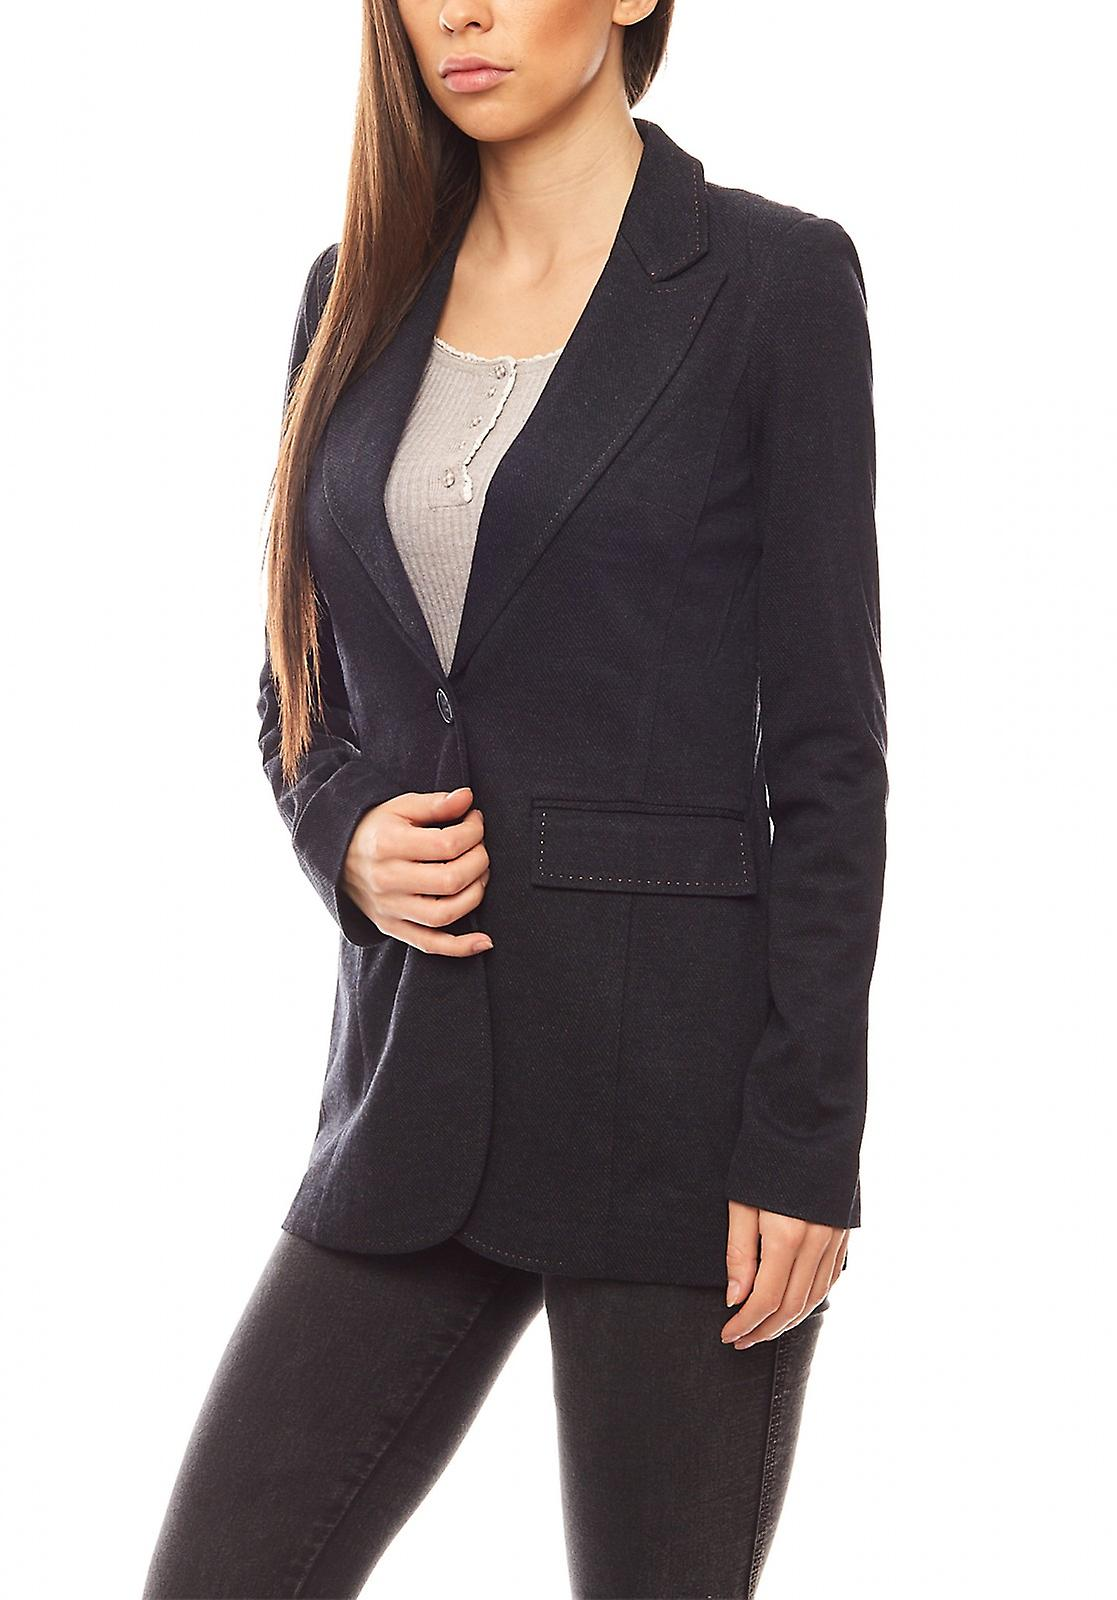 new product 4c53a 12d64 Ashley brooke of figure dominated women s Jersey Blazer Navy